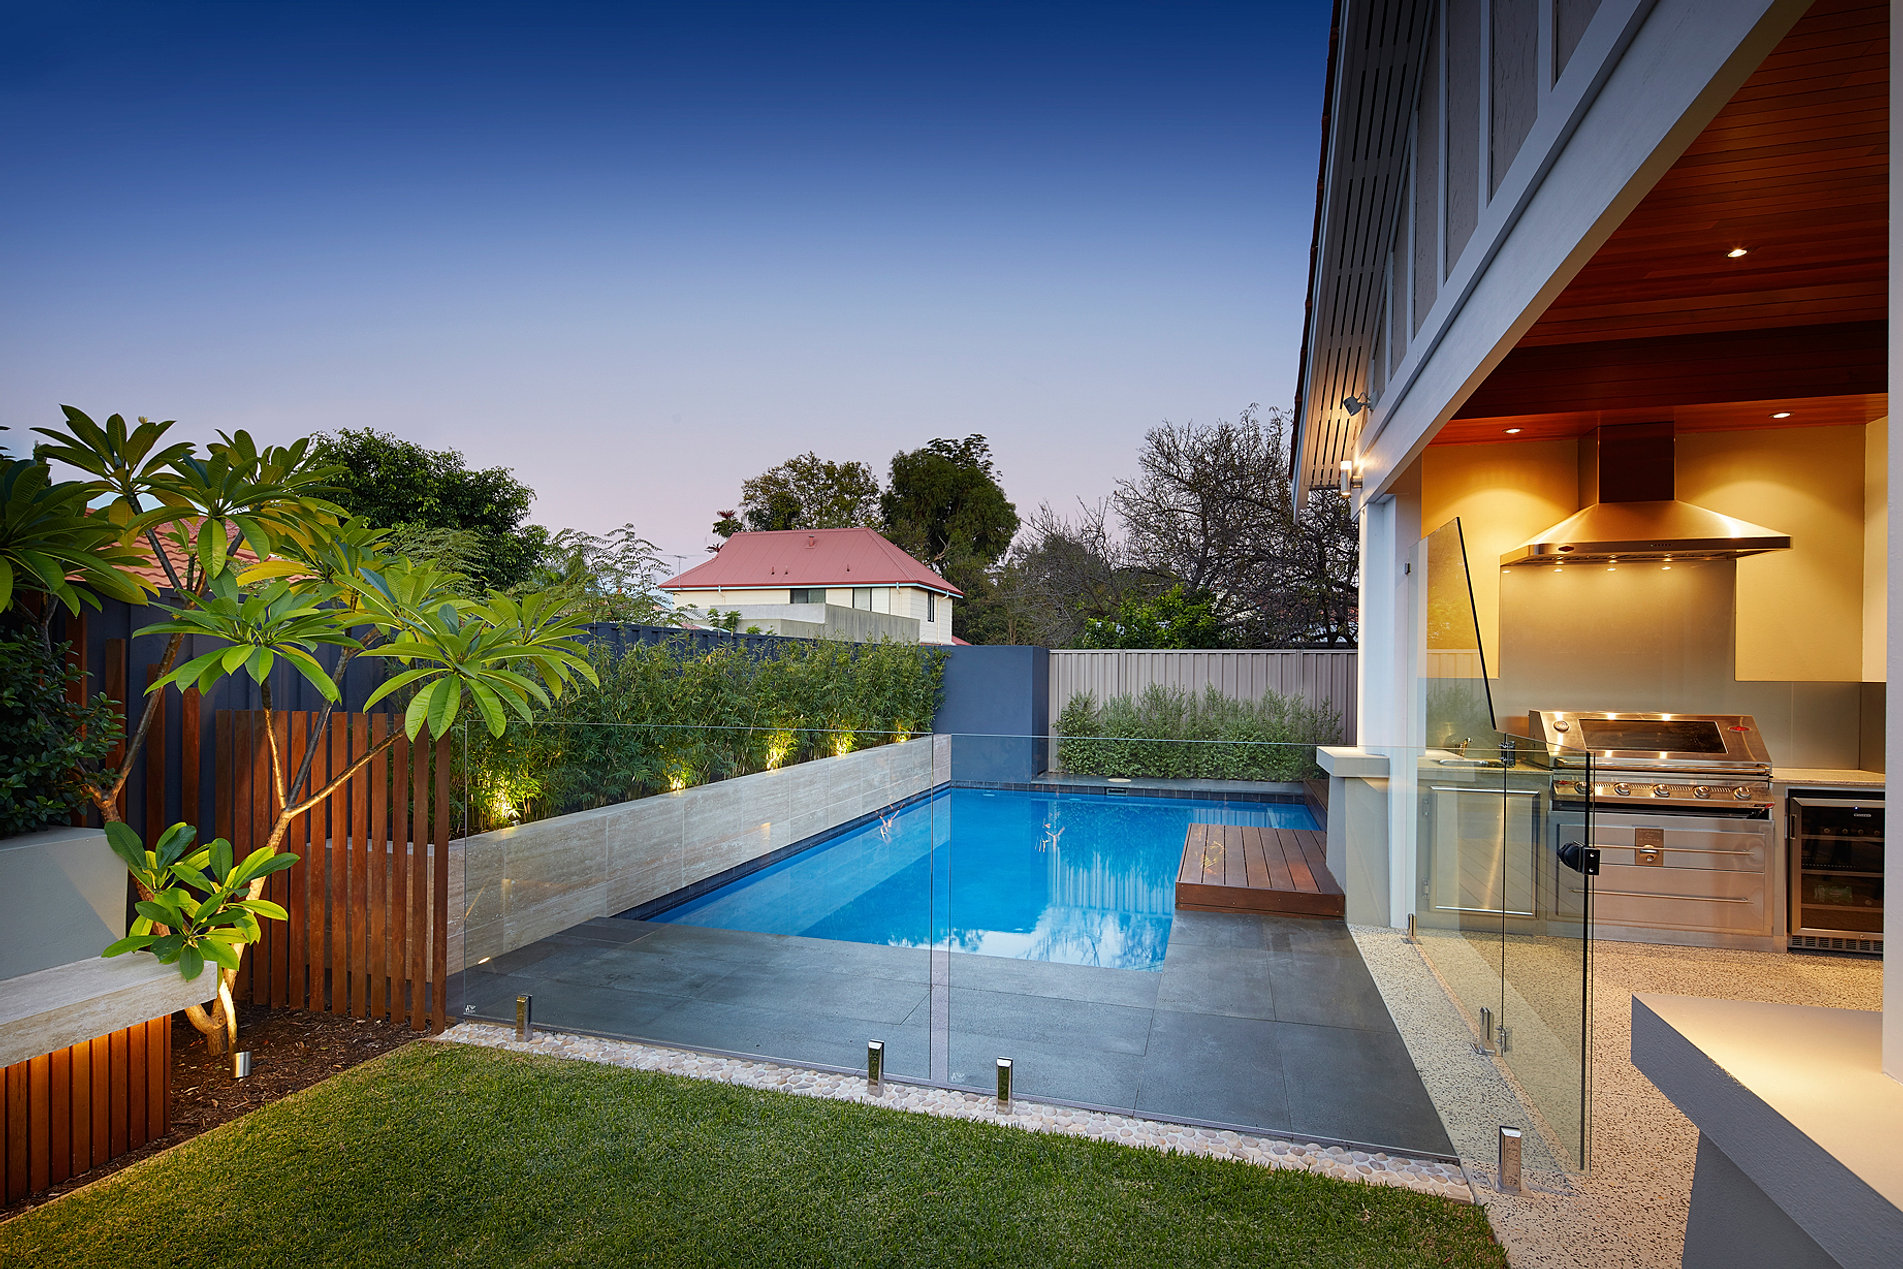 Principal pools landscapes lanscape design perth for Pool landscapes ideas pictures